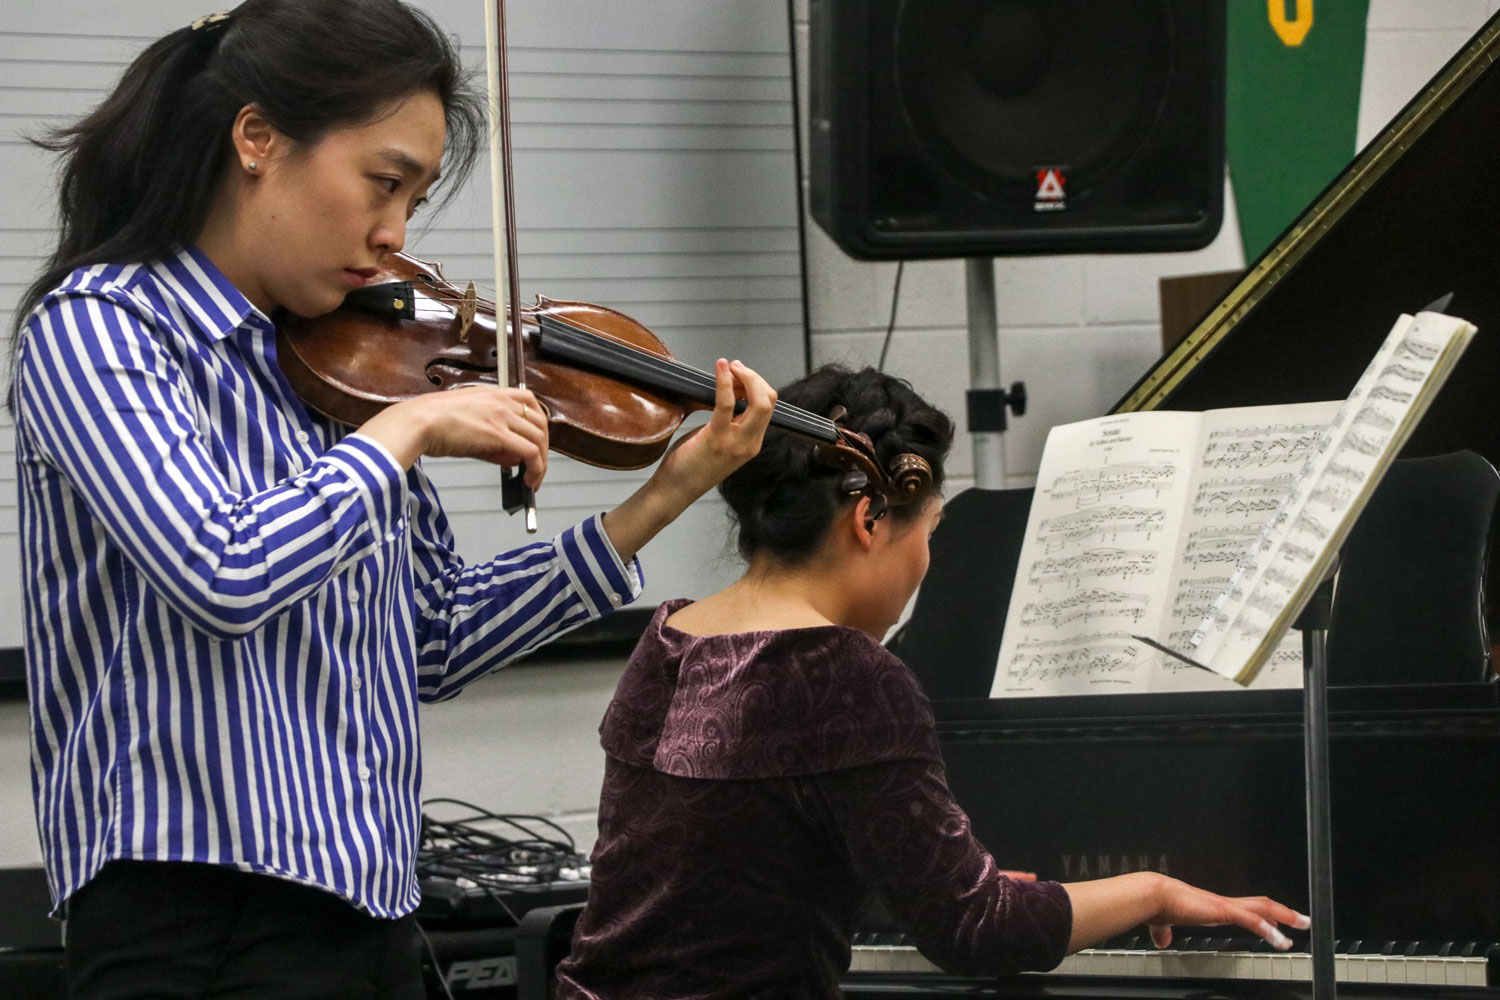 The Humanities department of Seward County Community College hosted Lucy Tan and Yunjung's first night of their tour,